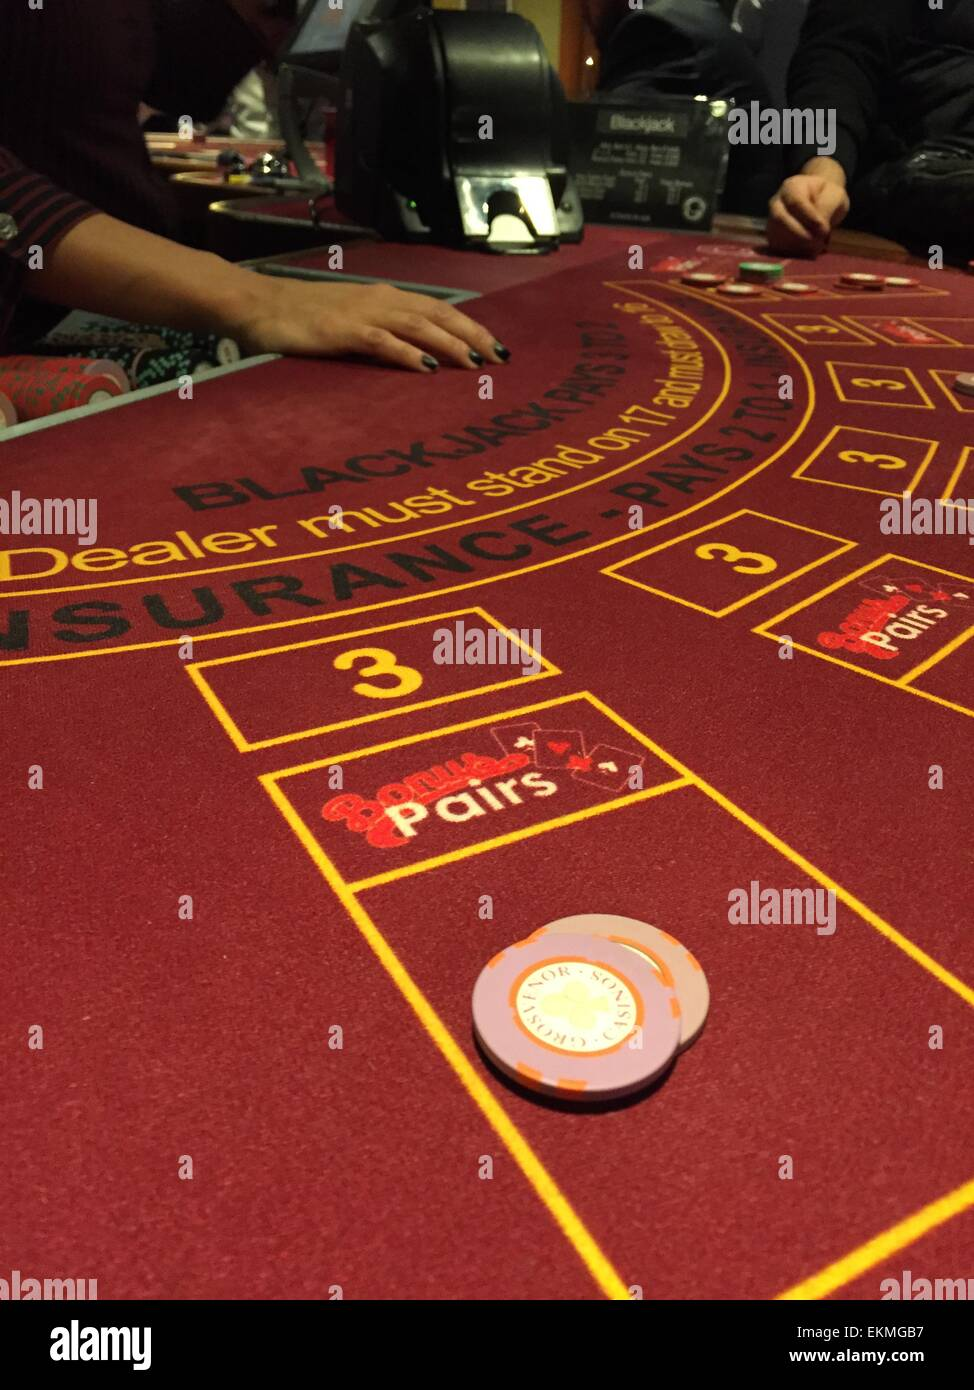 casino, blackjack table - Stock Image